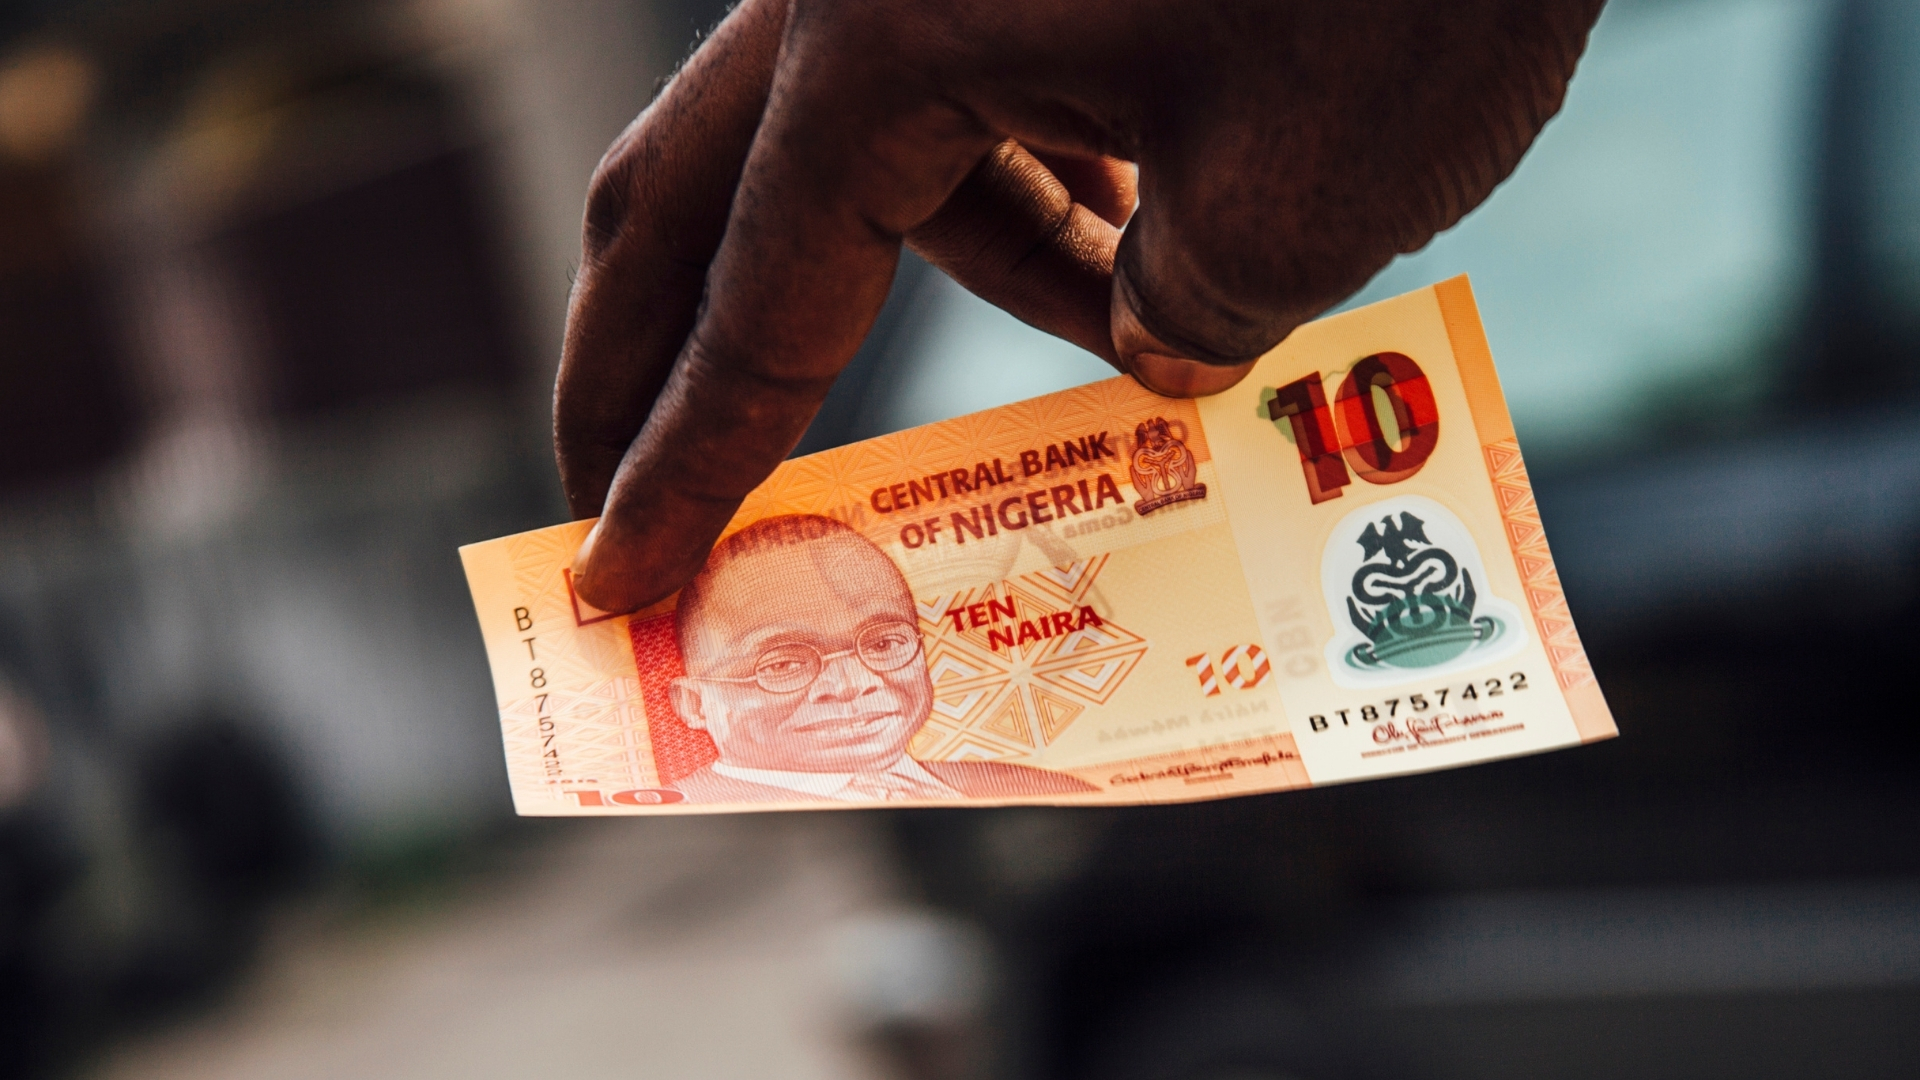 Should I tithe? 10 Naira note in someone's hand